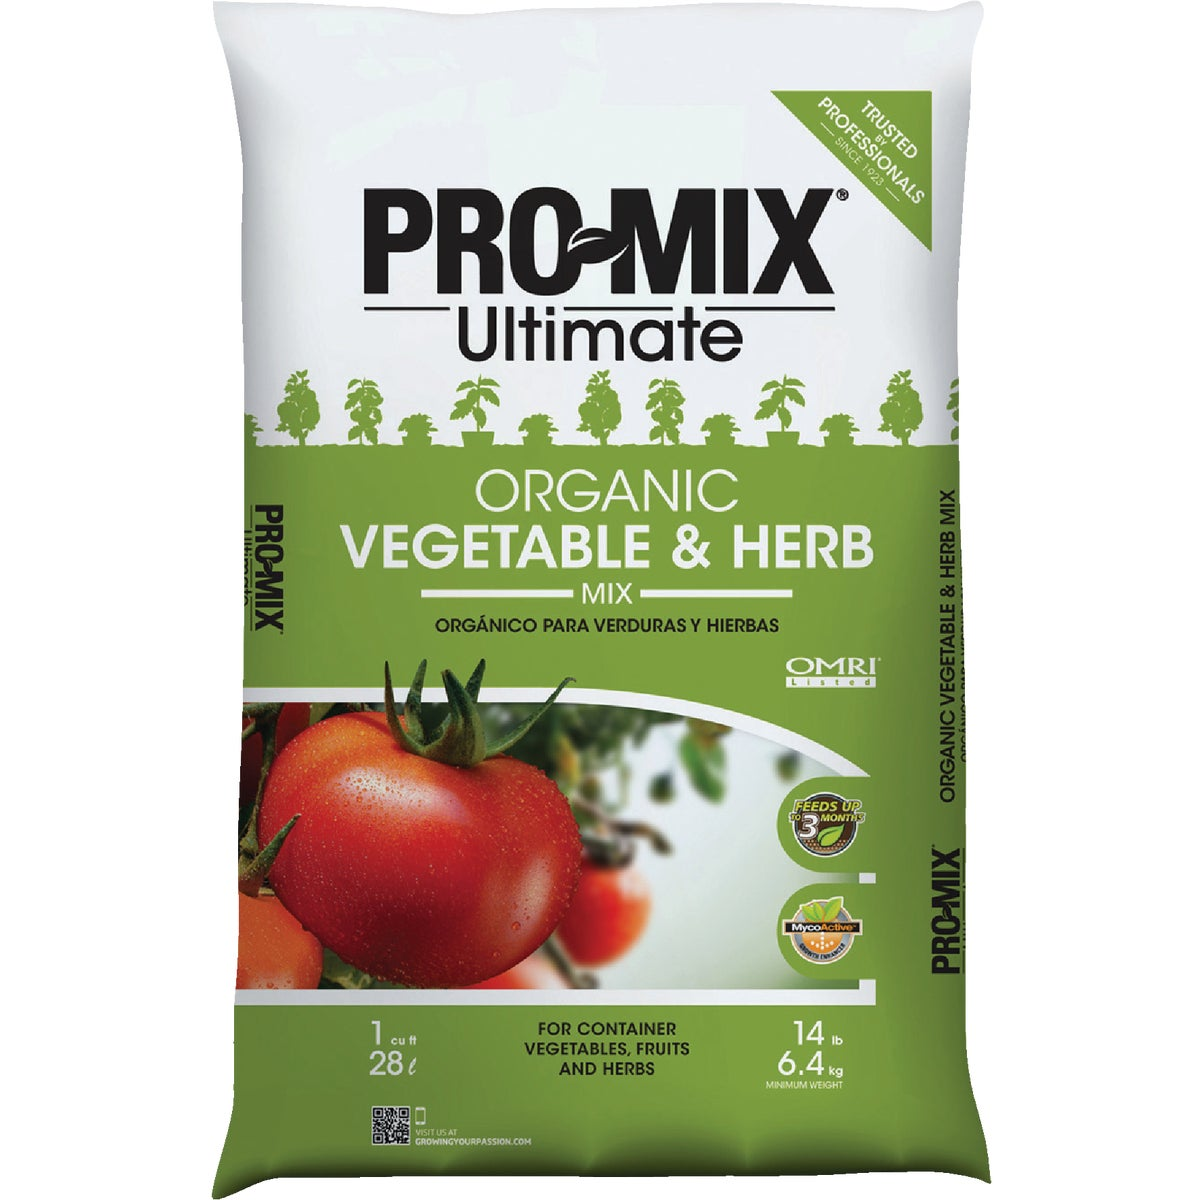 1CF ORG VEG HERB MIX - 1010051RG by Premier Horticulture